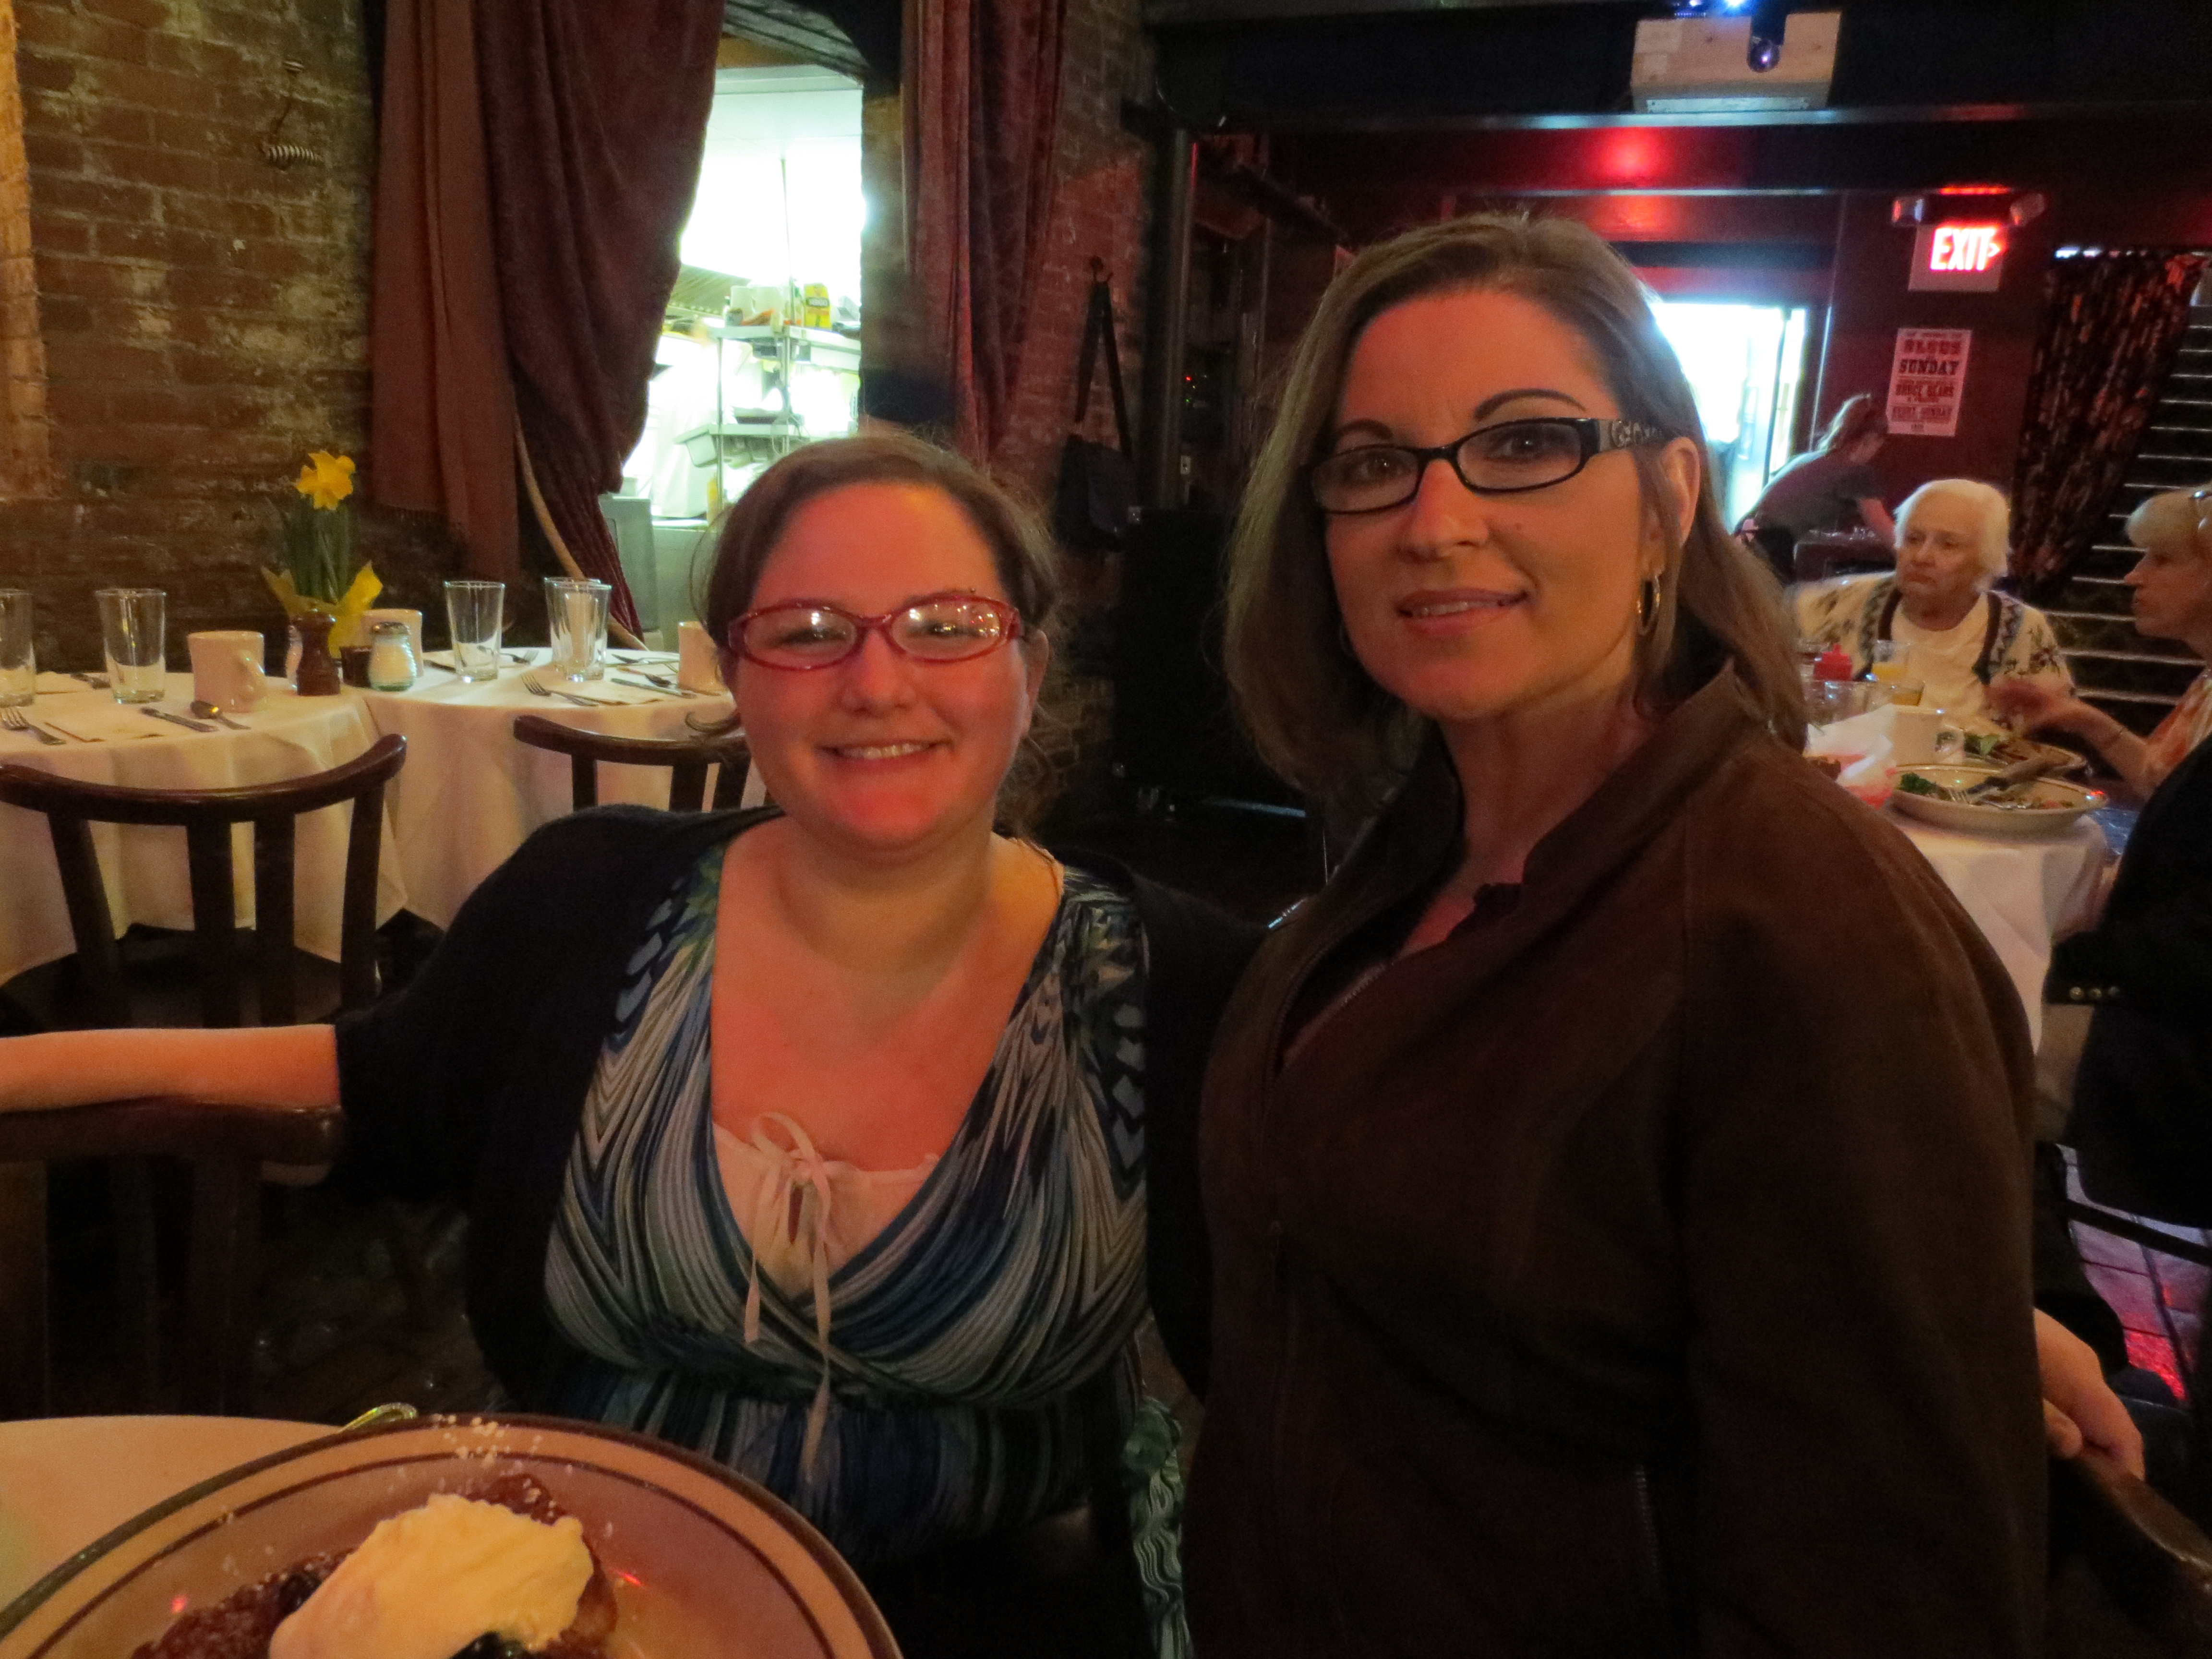 ... Paula and our awesome server Stephanie The Beehive 3-31-13 Boston